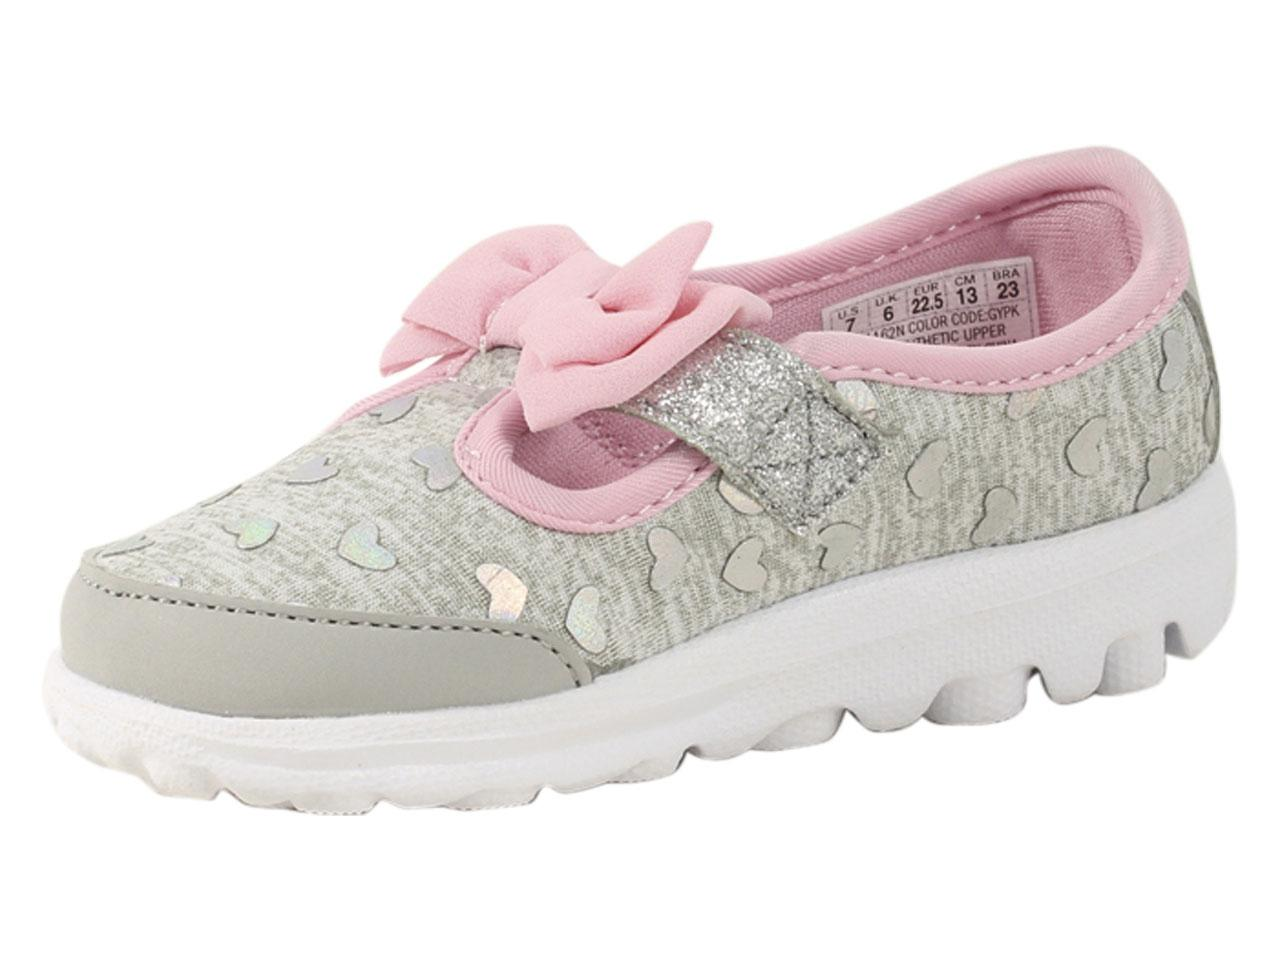 e23f8328f1c3c Skechers Toddler Girl's Go Walk Bitty Hearts Gray/Pink Loafers Shoes ...